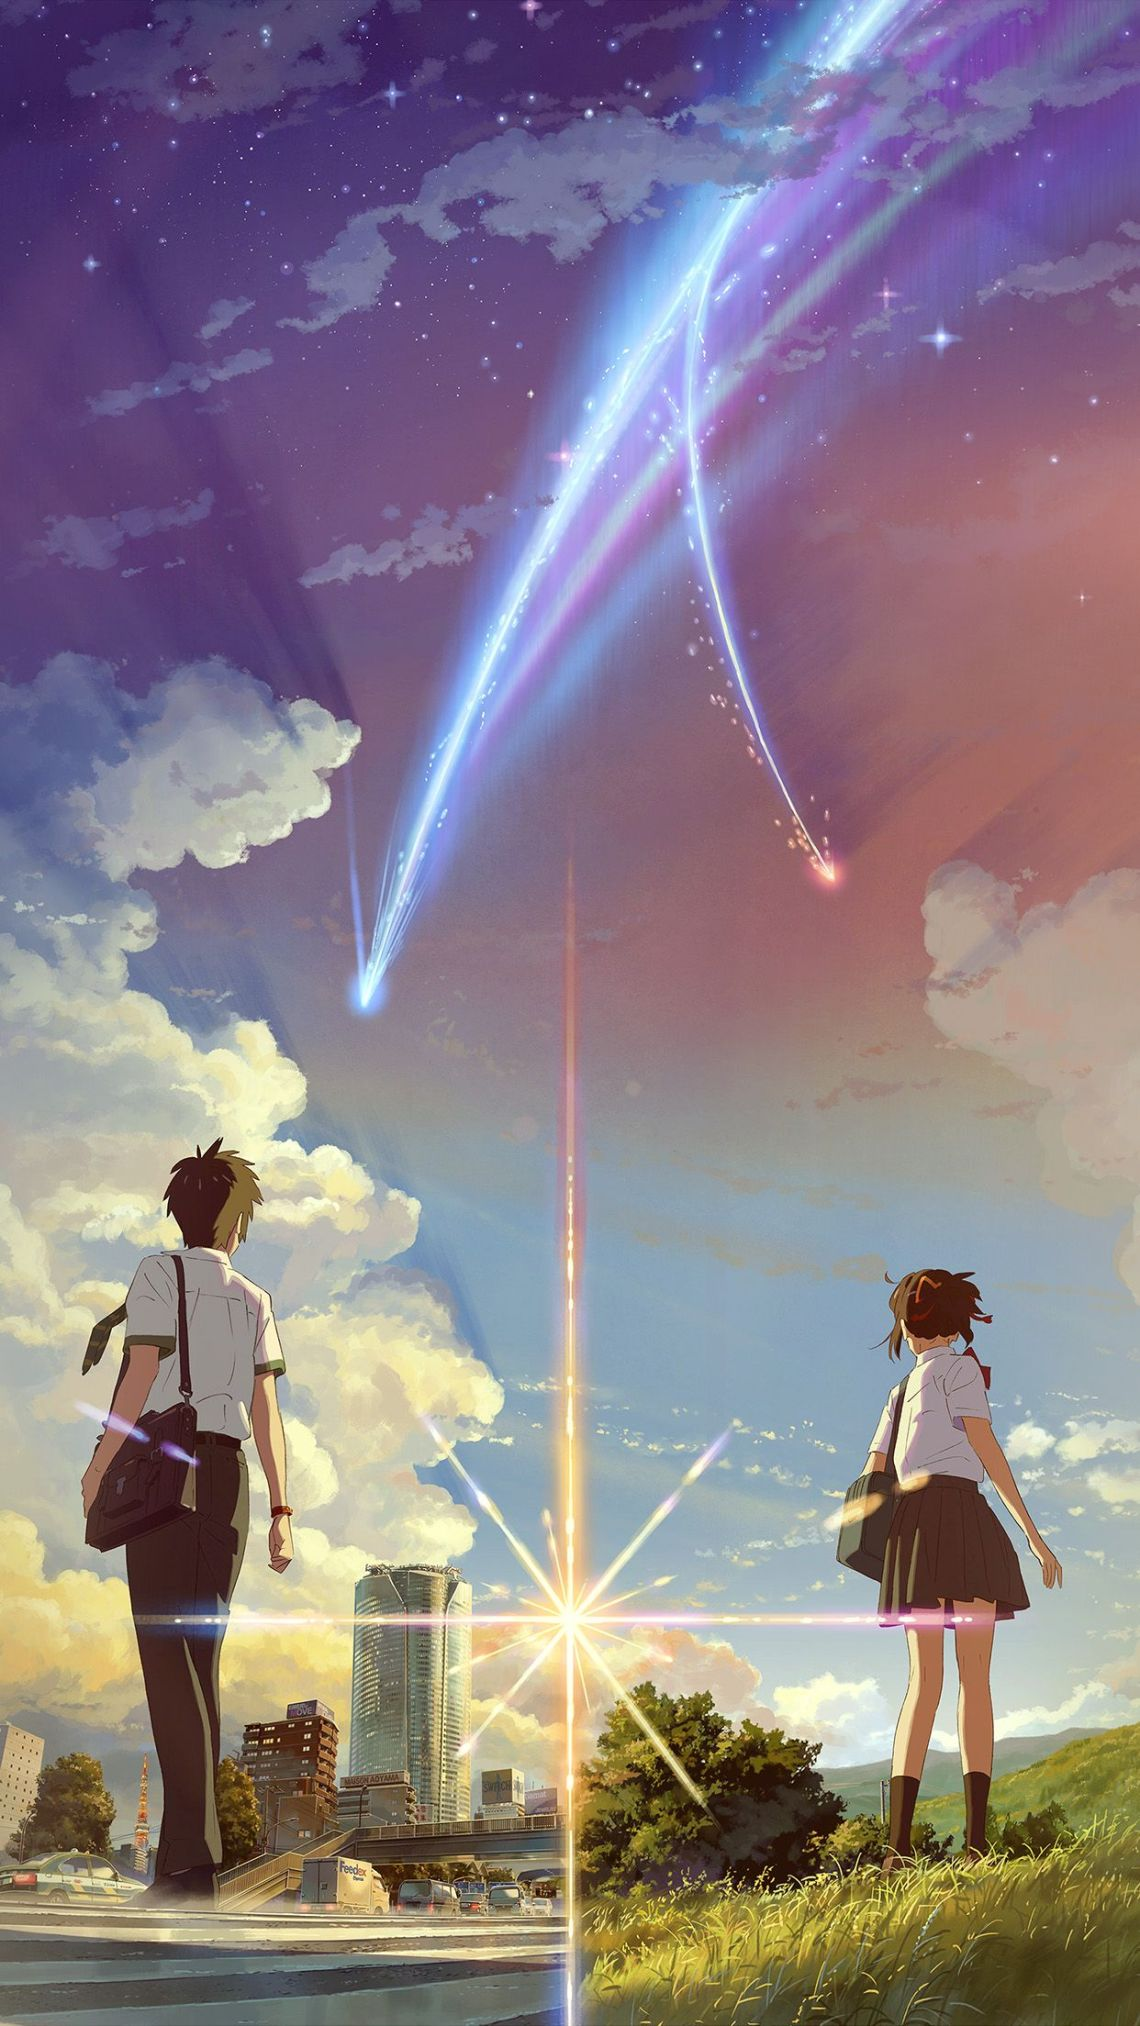 Boy And Girl Anime Art Spring Cute Flare Android Wallpaper Your Name Wallpaper Smartphone 1242x2208 Wallpaper Teahub Io